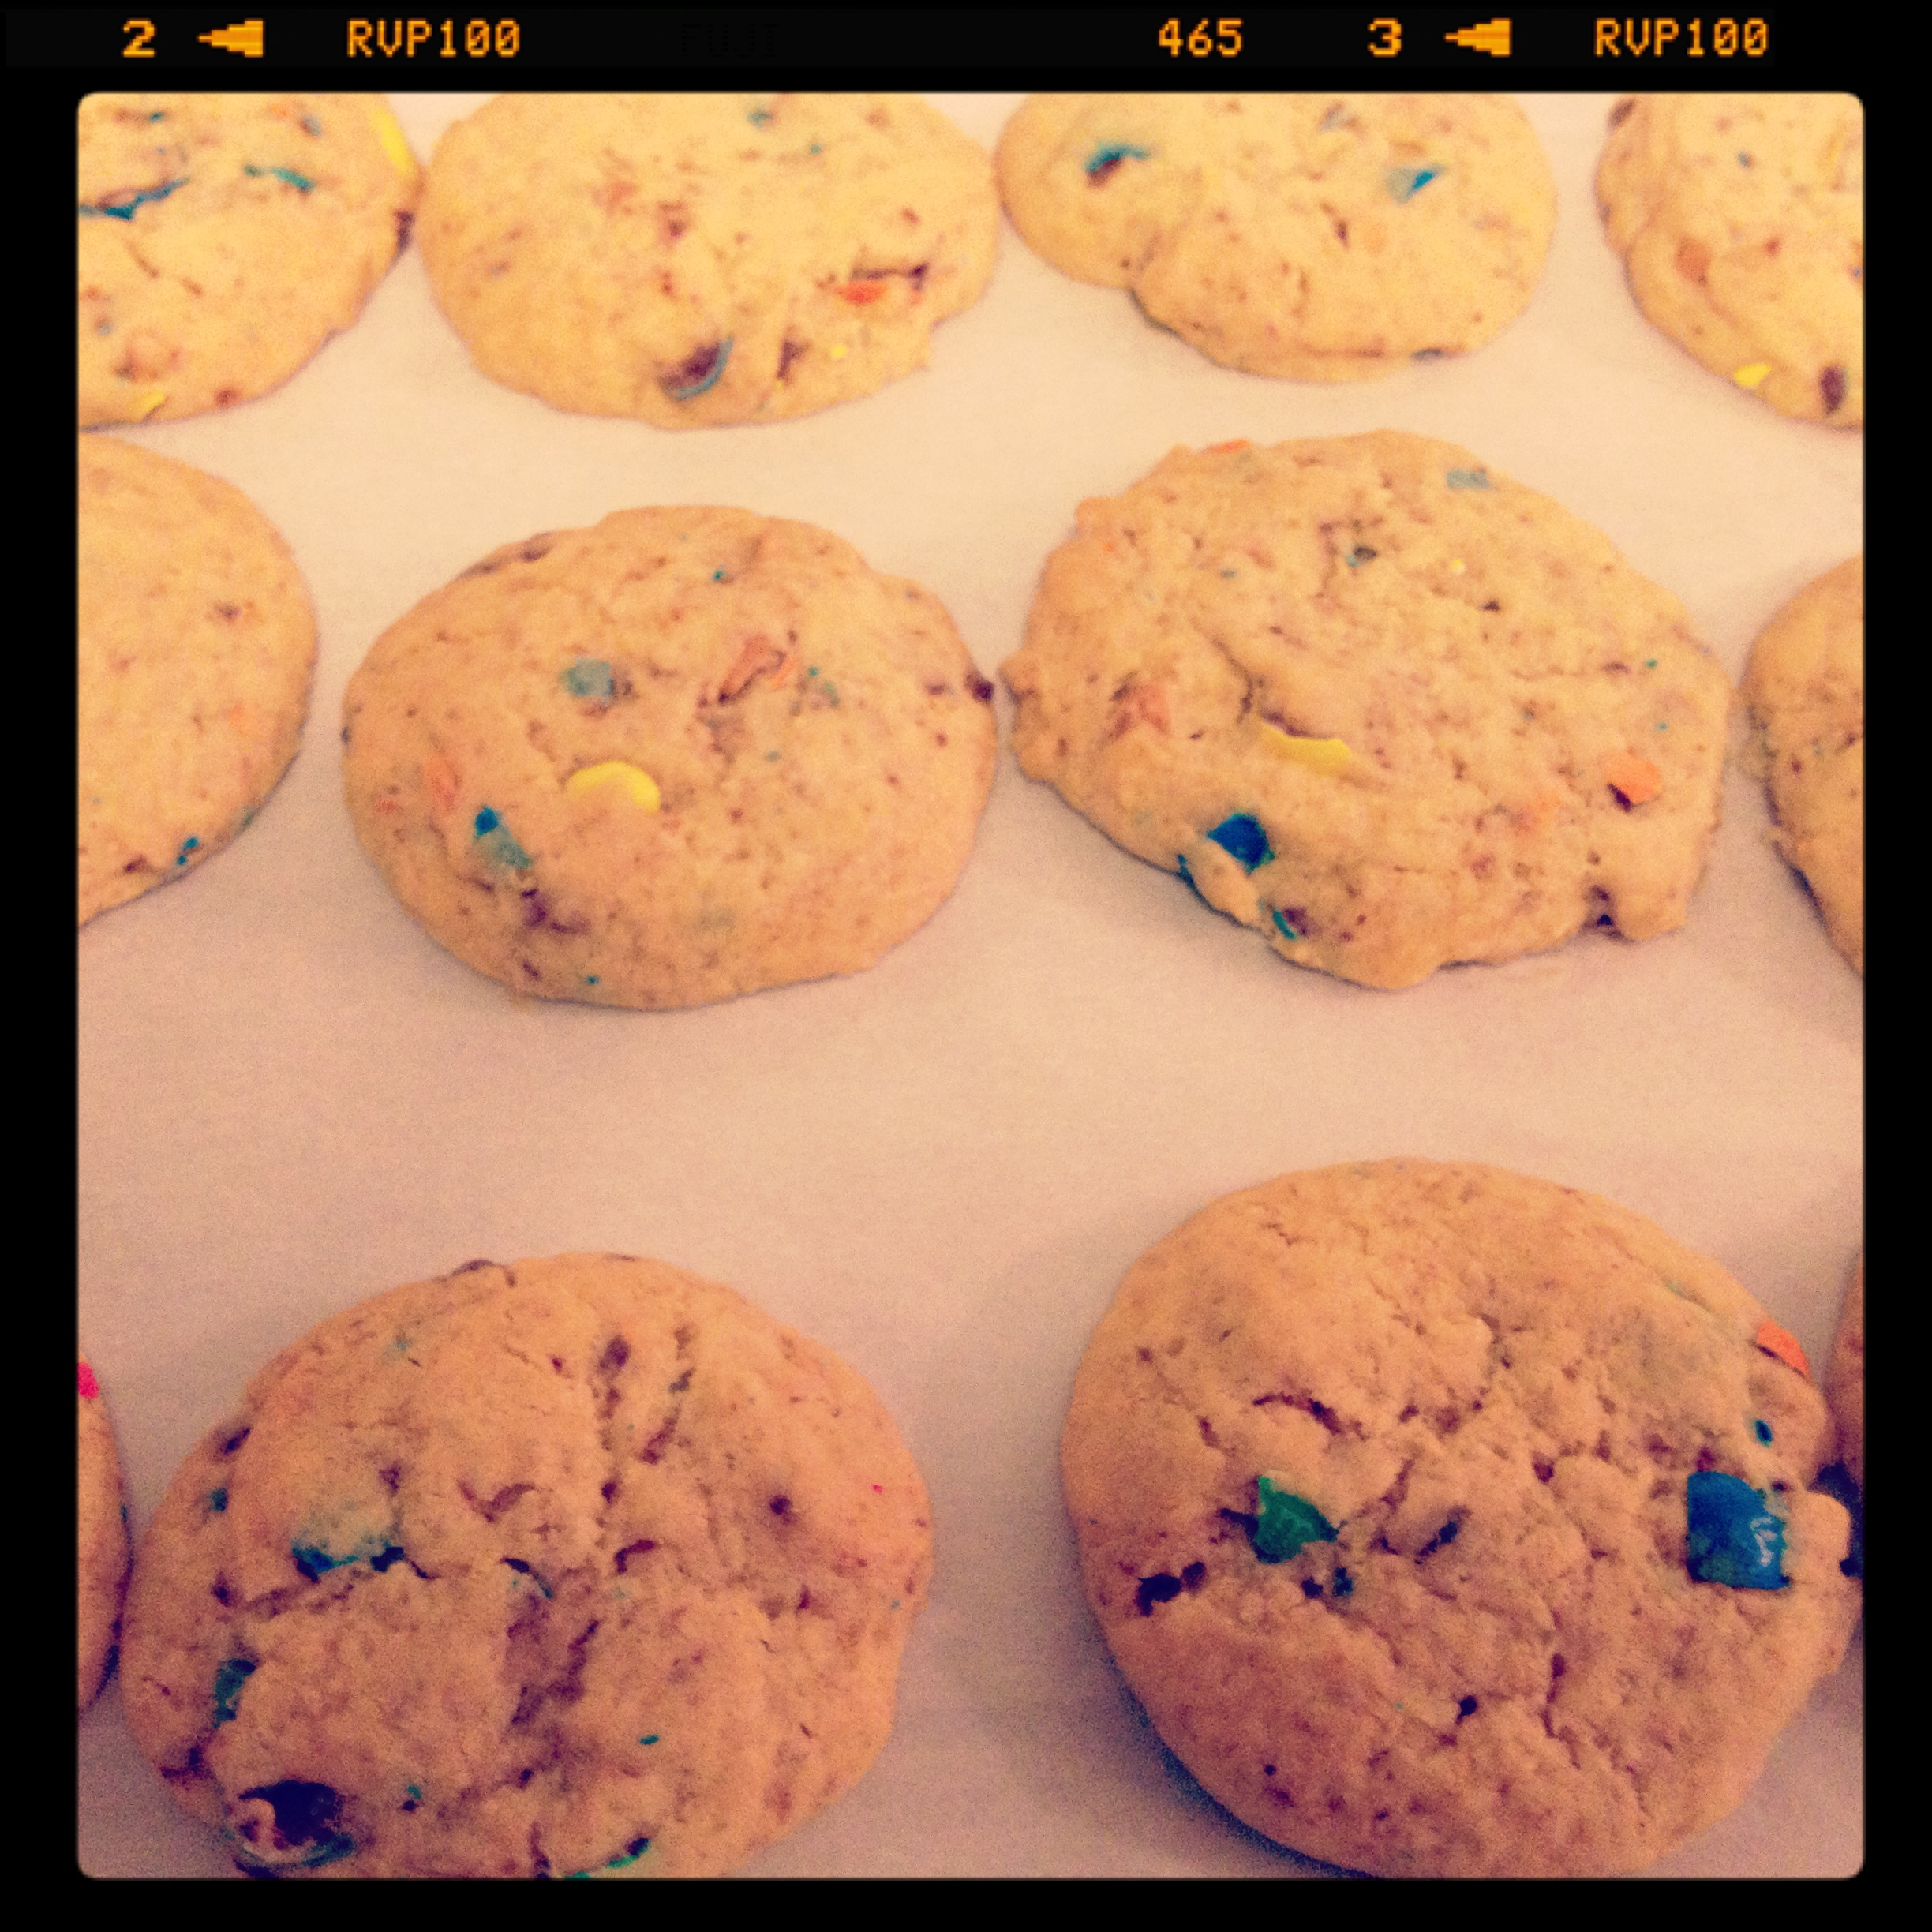 Cookies US aux m&m's